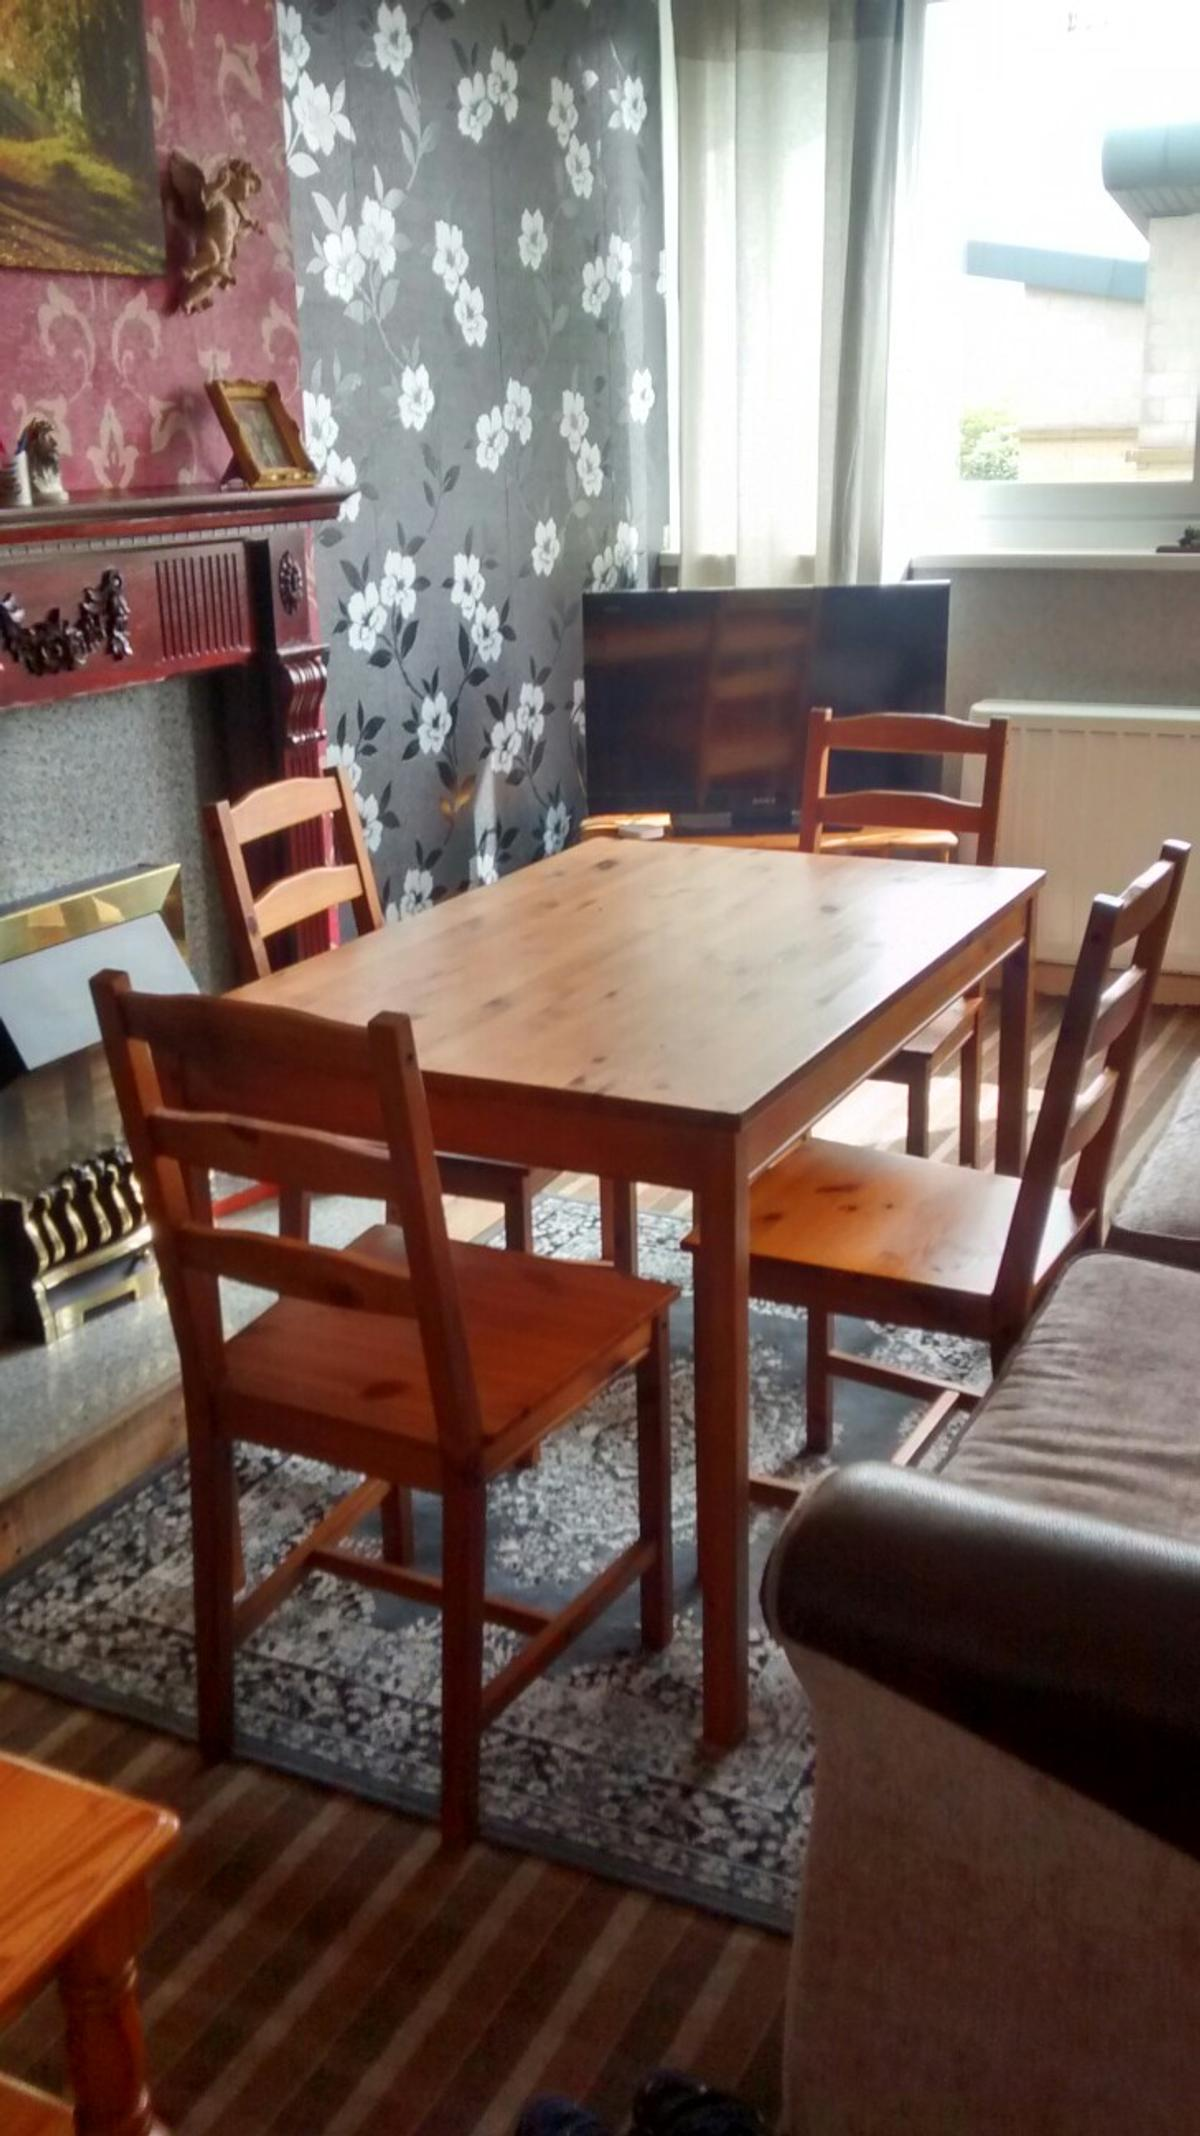 Ikea Pine Dining Table And 4 Chairs